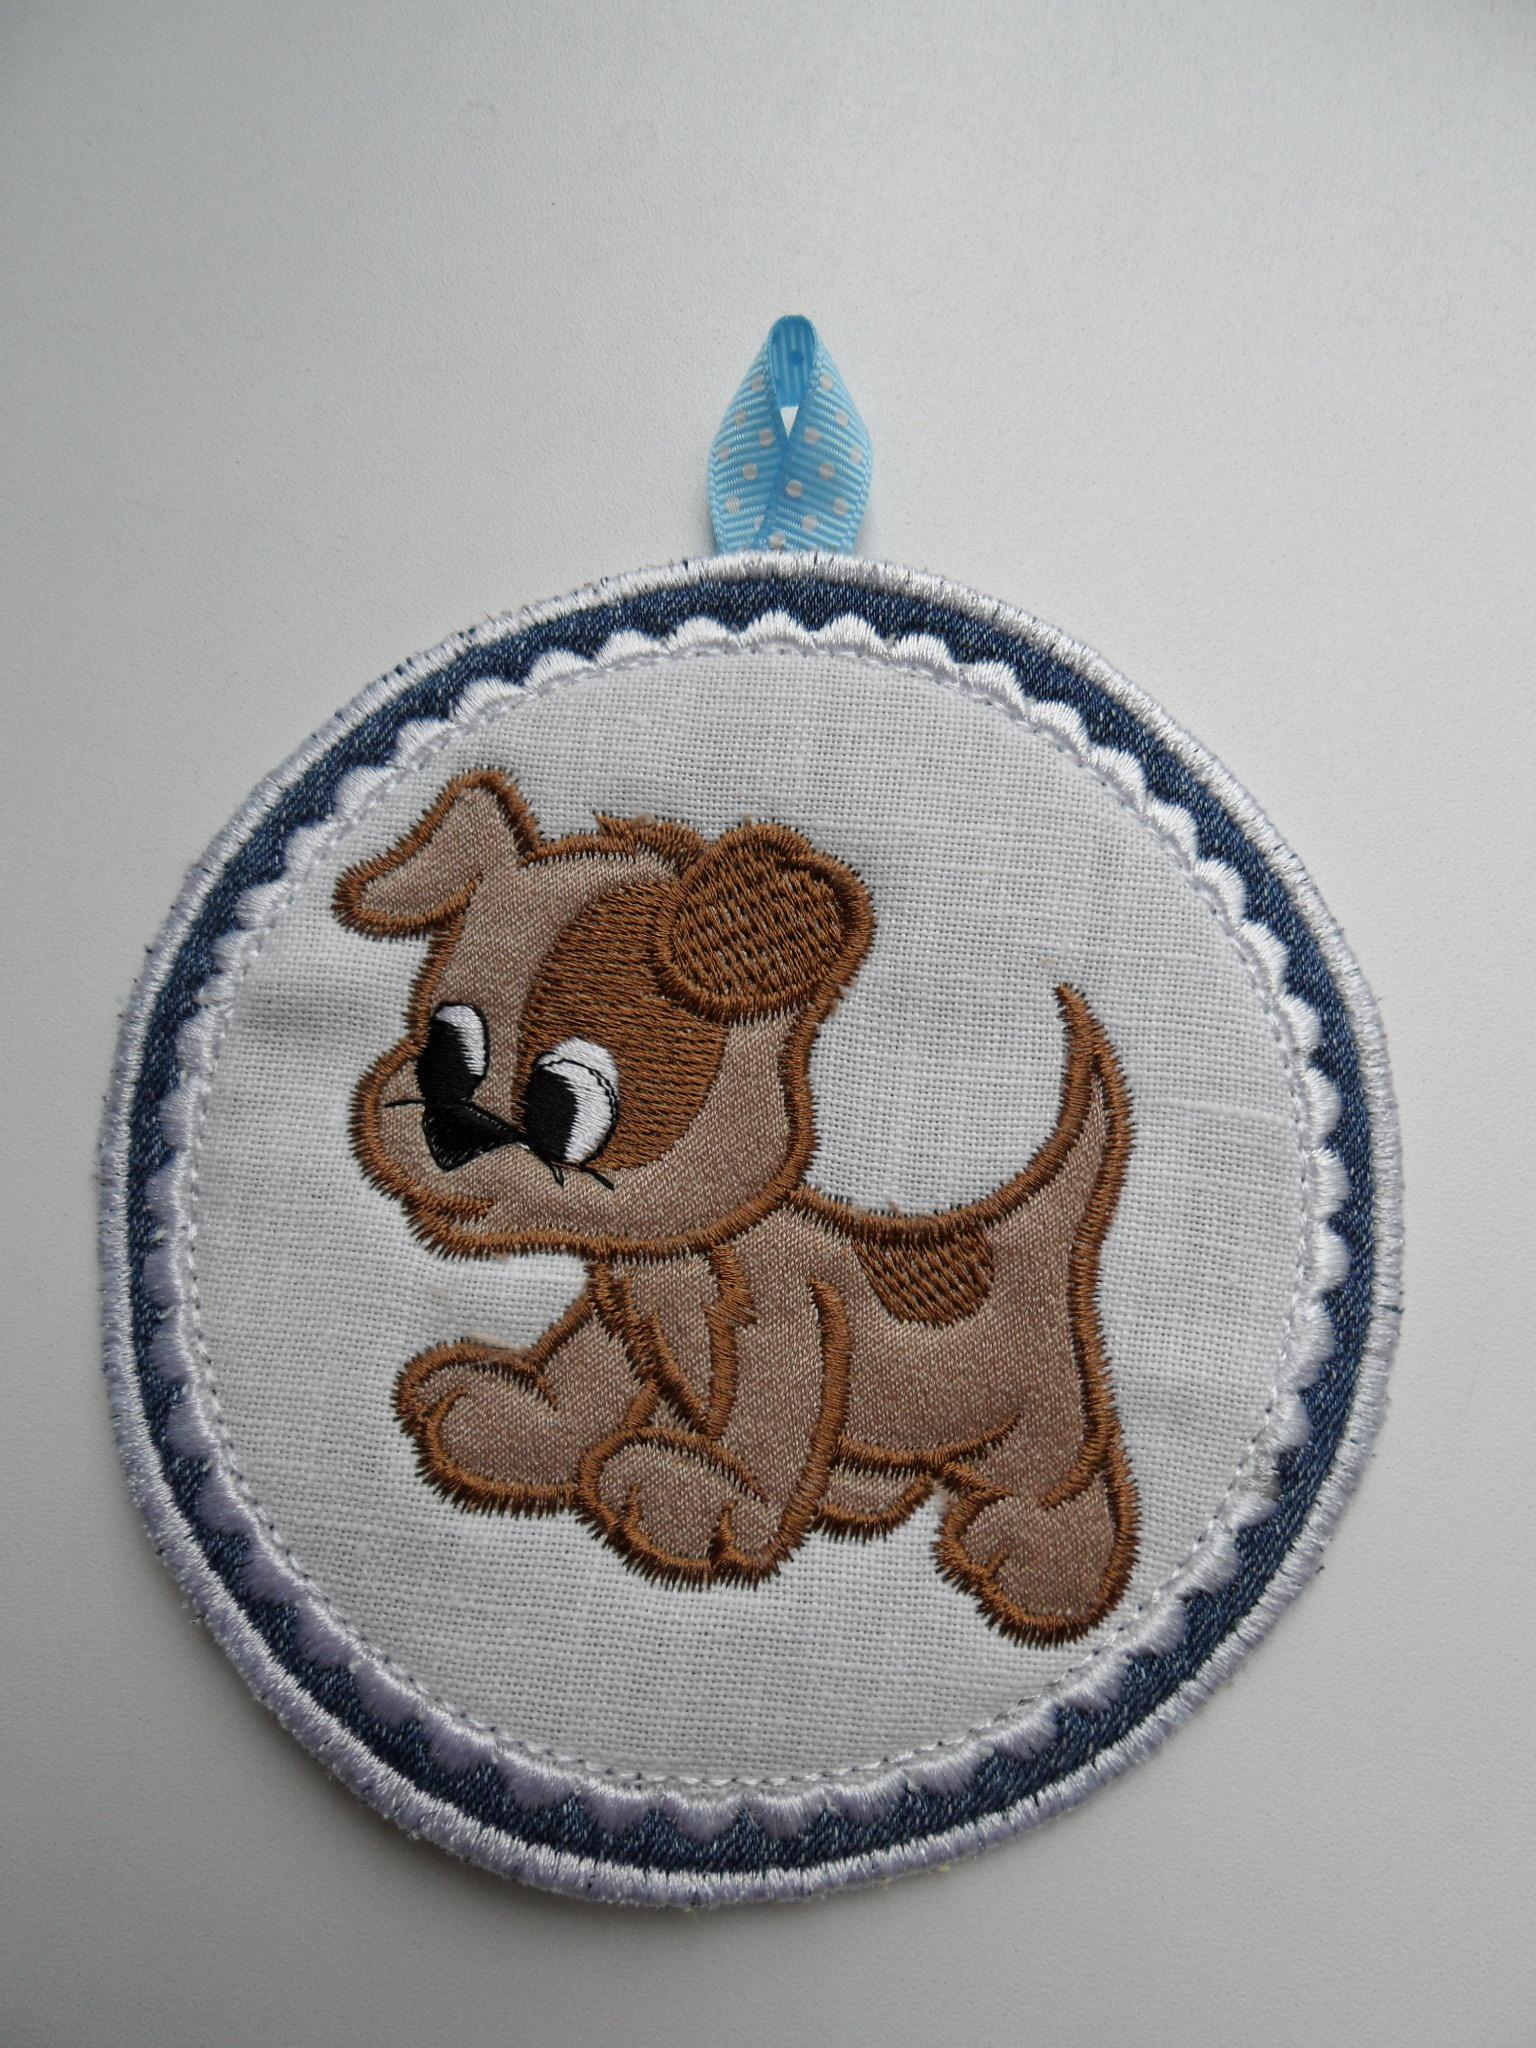 Embroidered potholder with funny puppy appllque free design